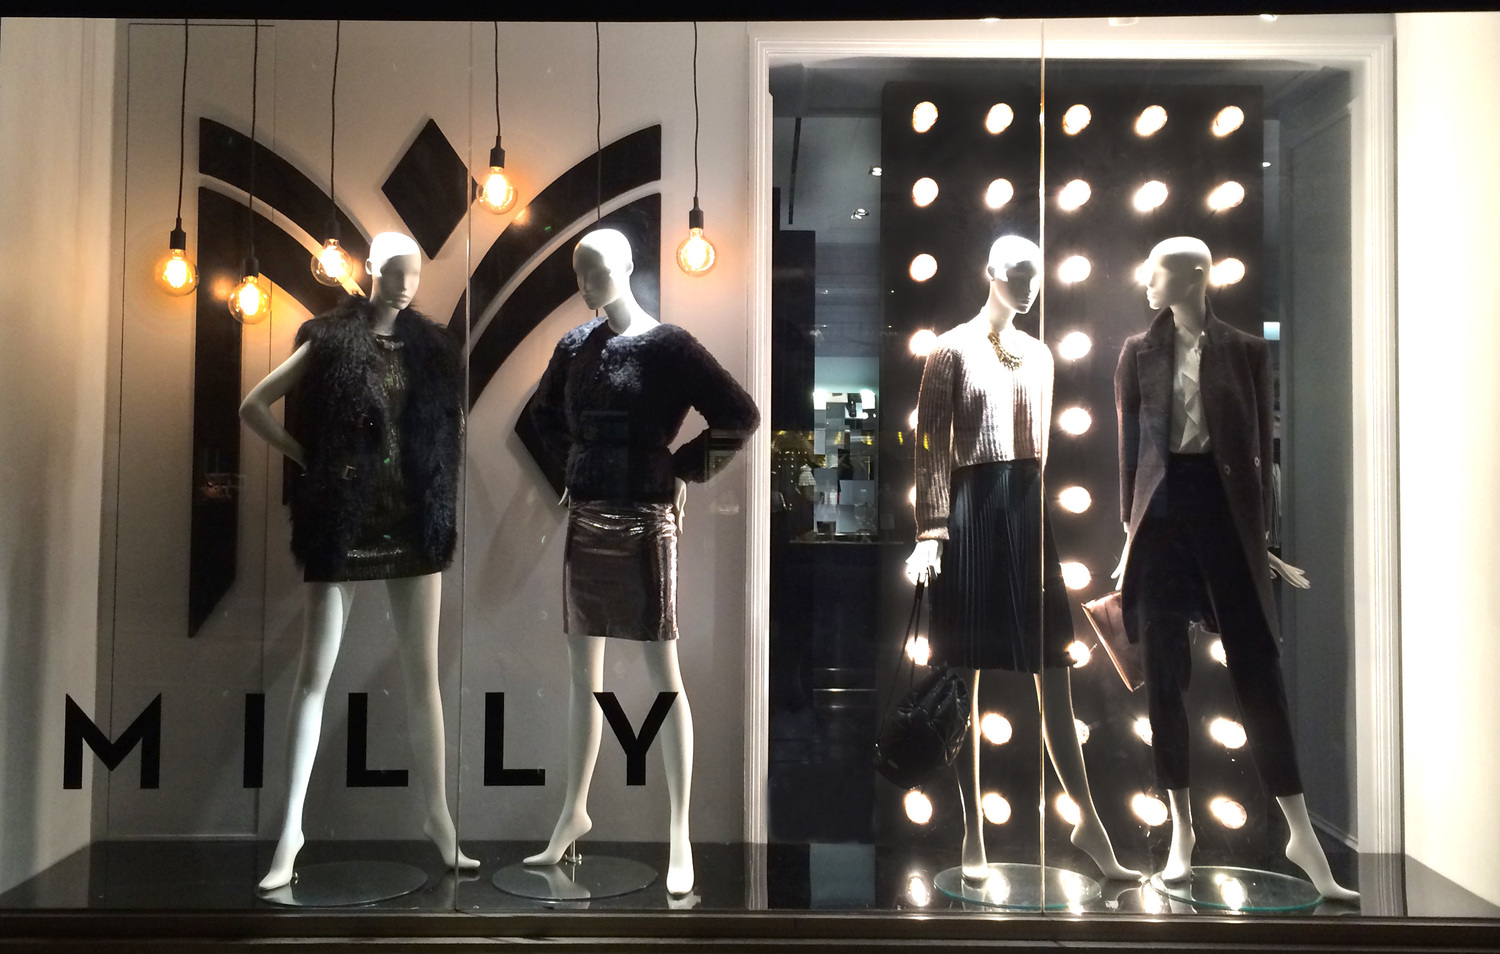 Milly goes with metallic and black nuances, also faux fur for the autumn collection presented in the window display.